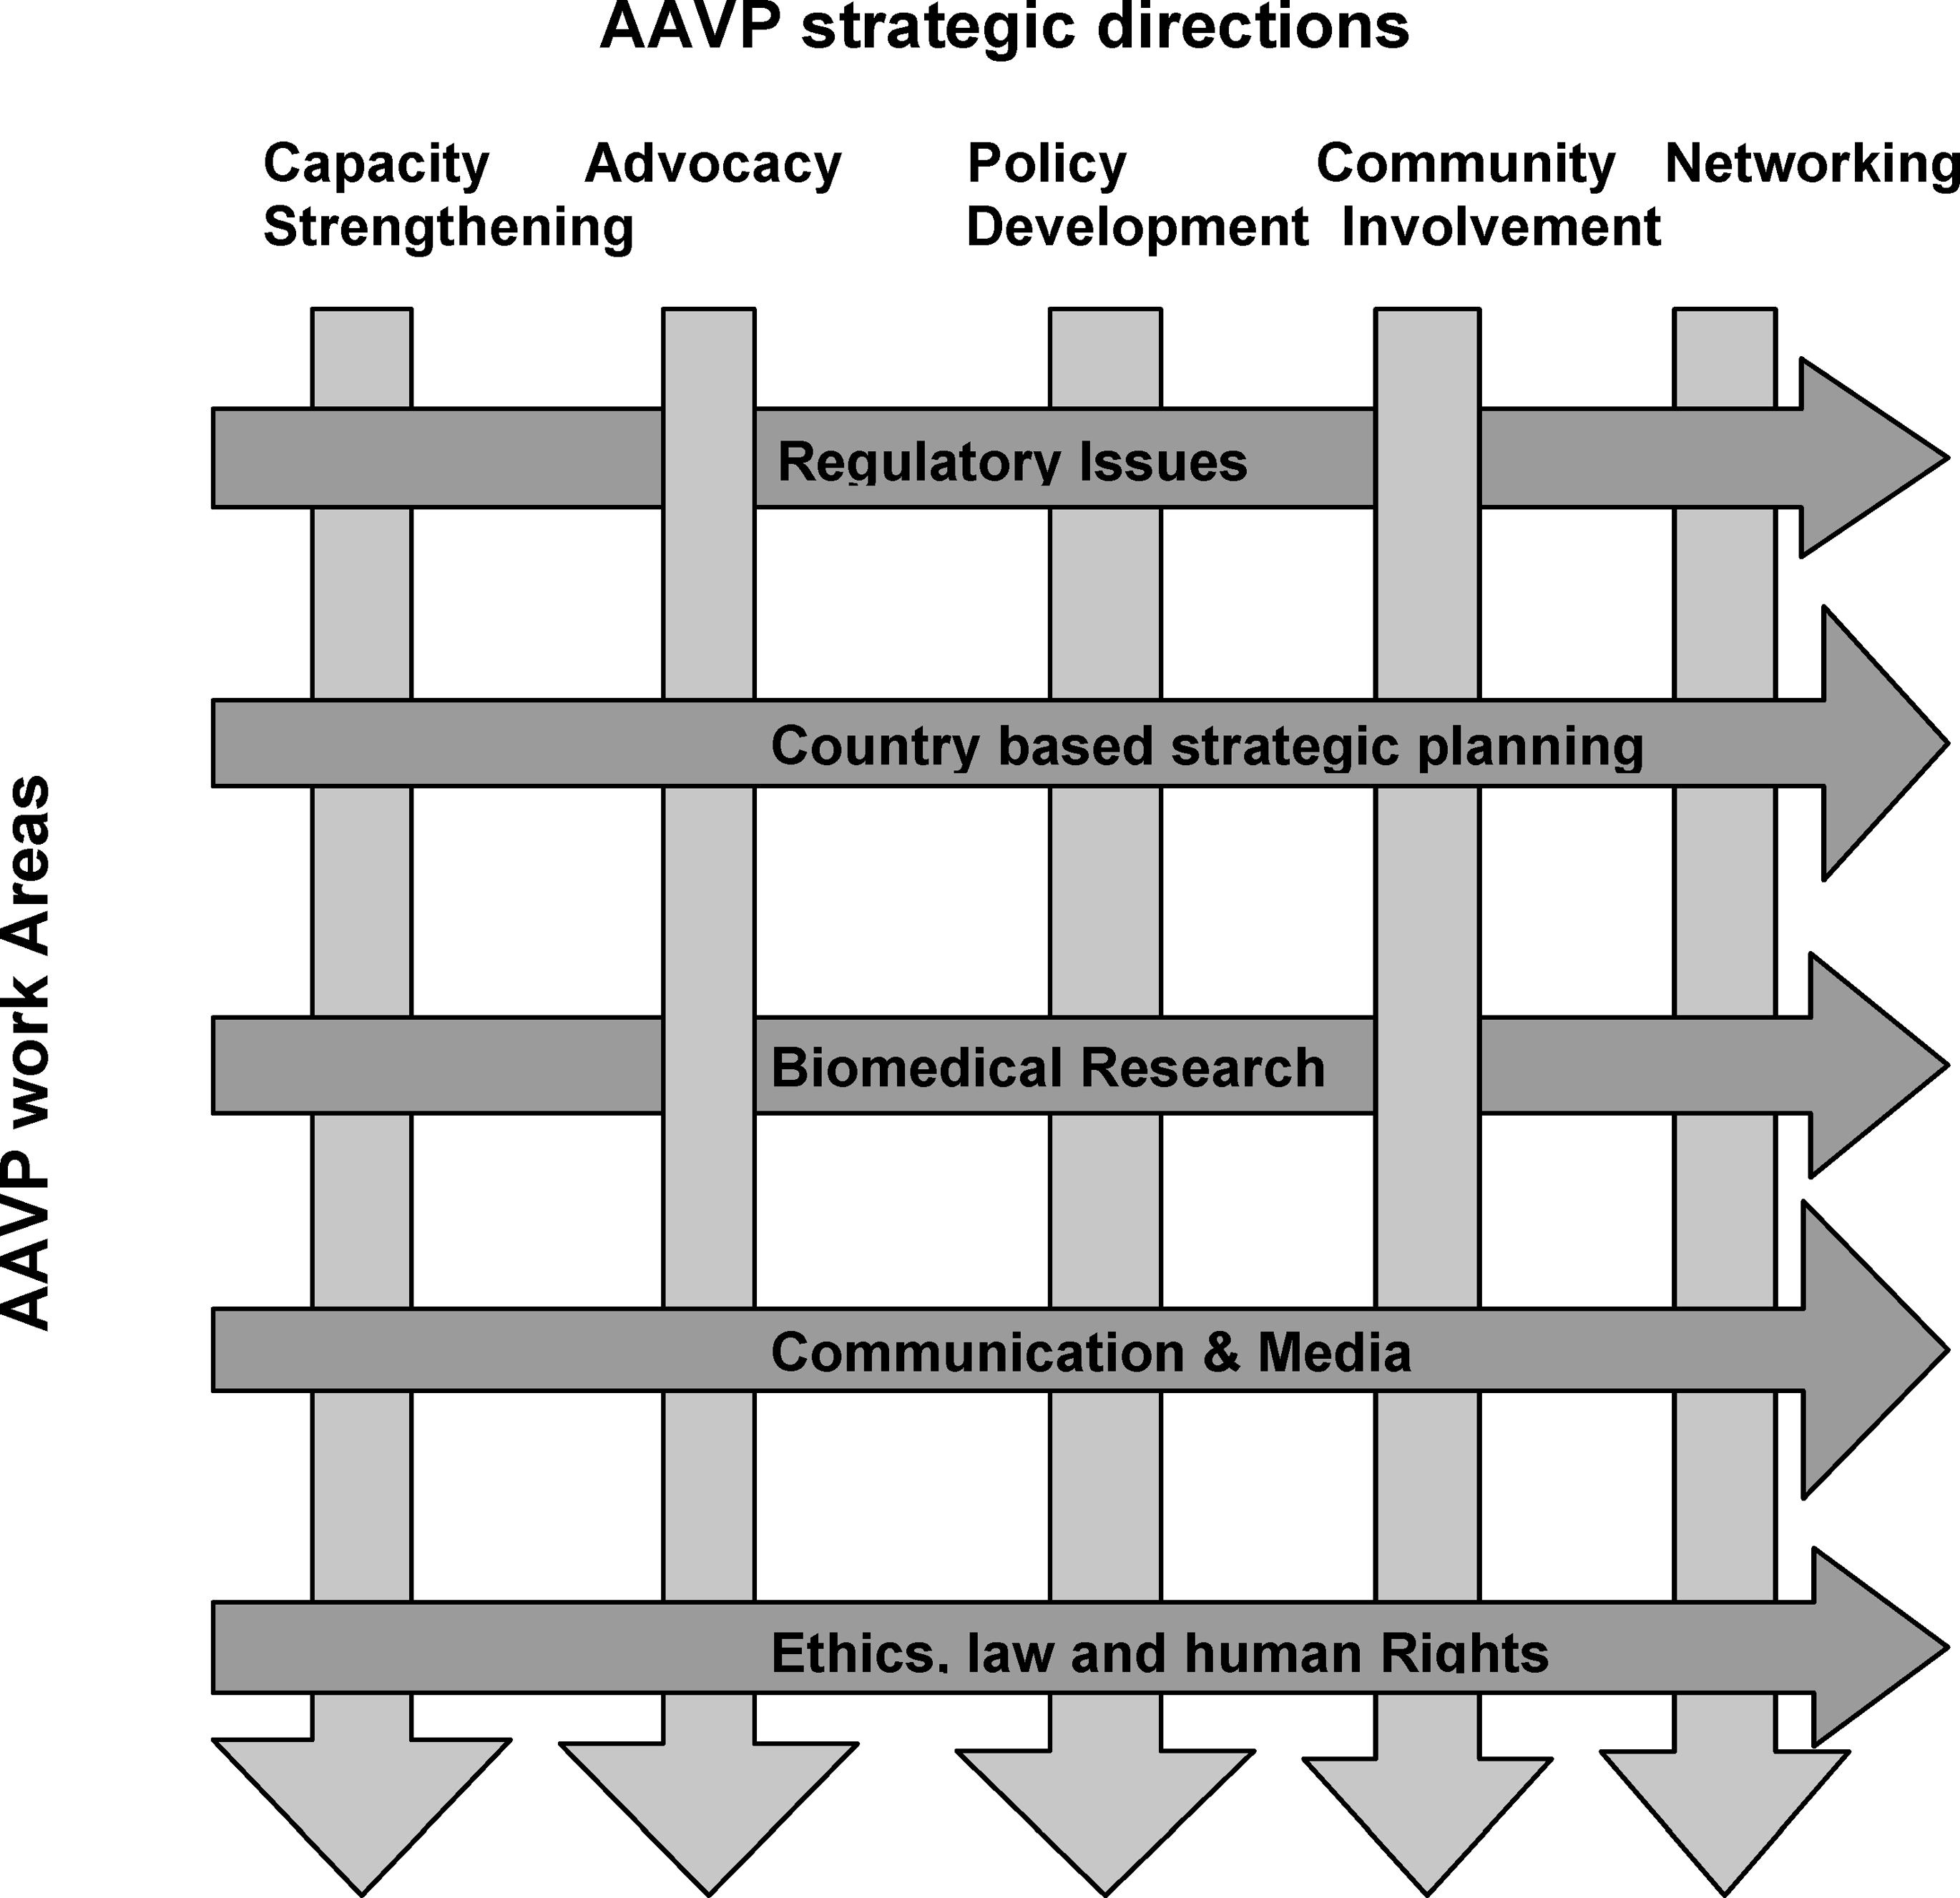 AAVP Strategic Directions and Work Areas